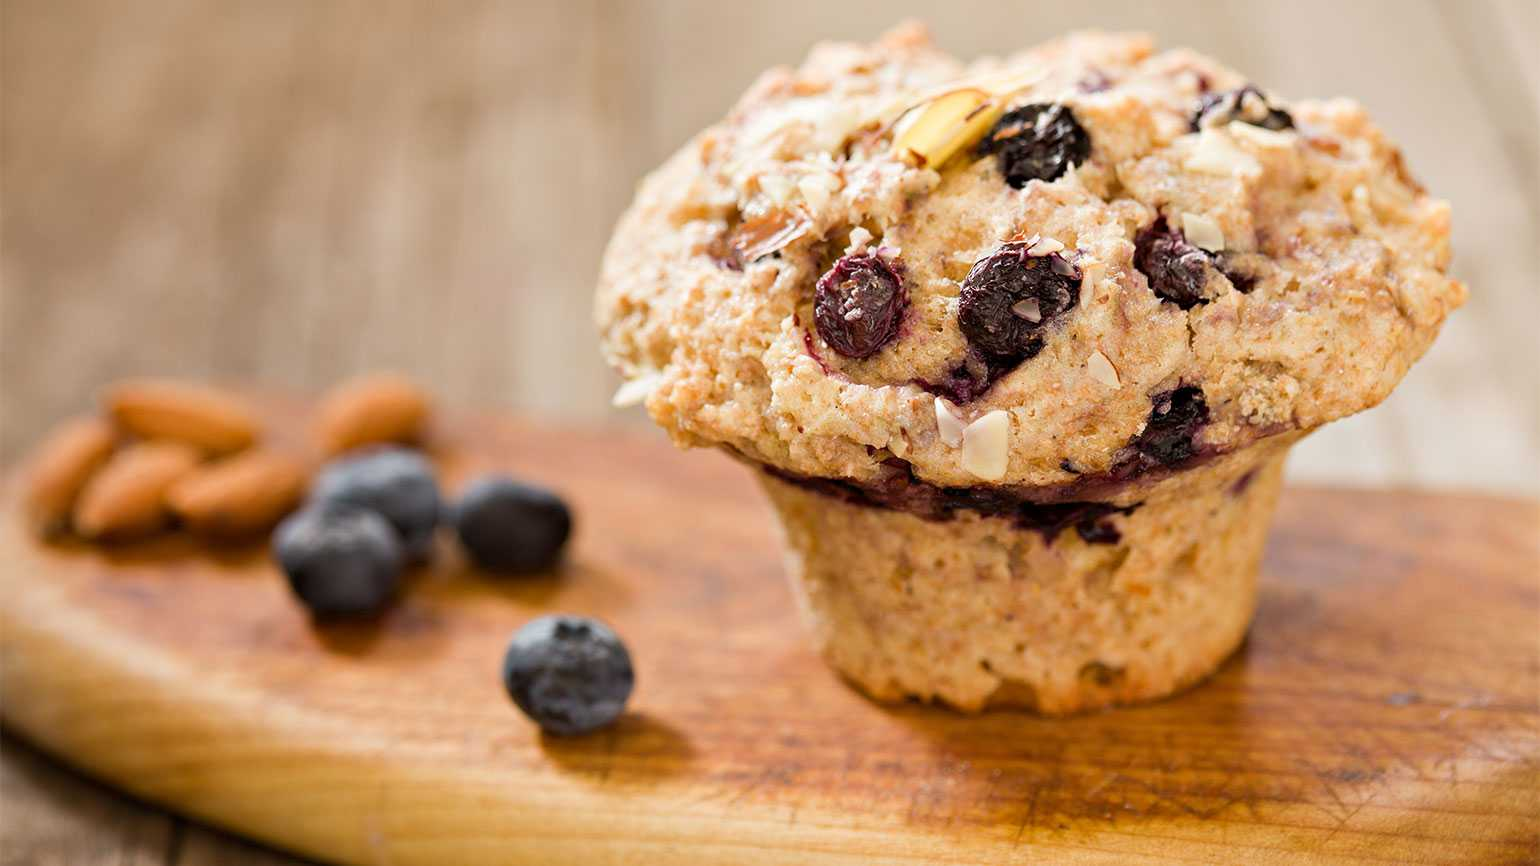 A blueberry almond muffin